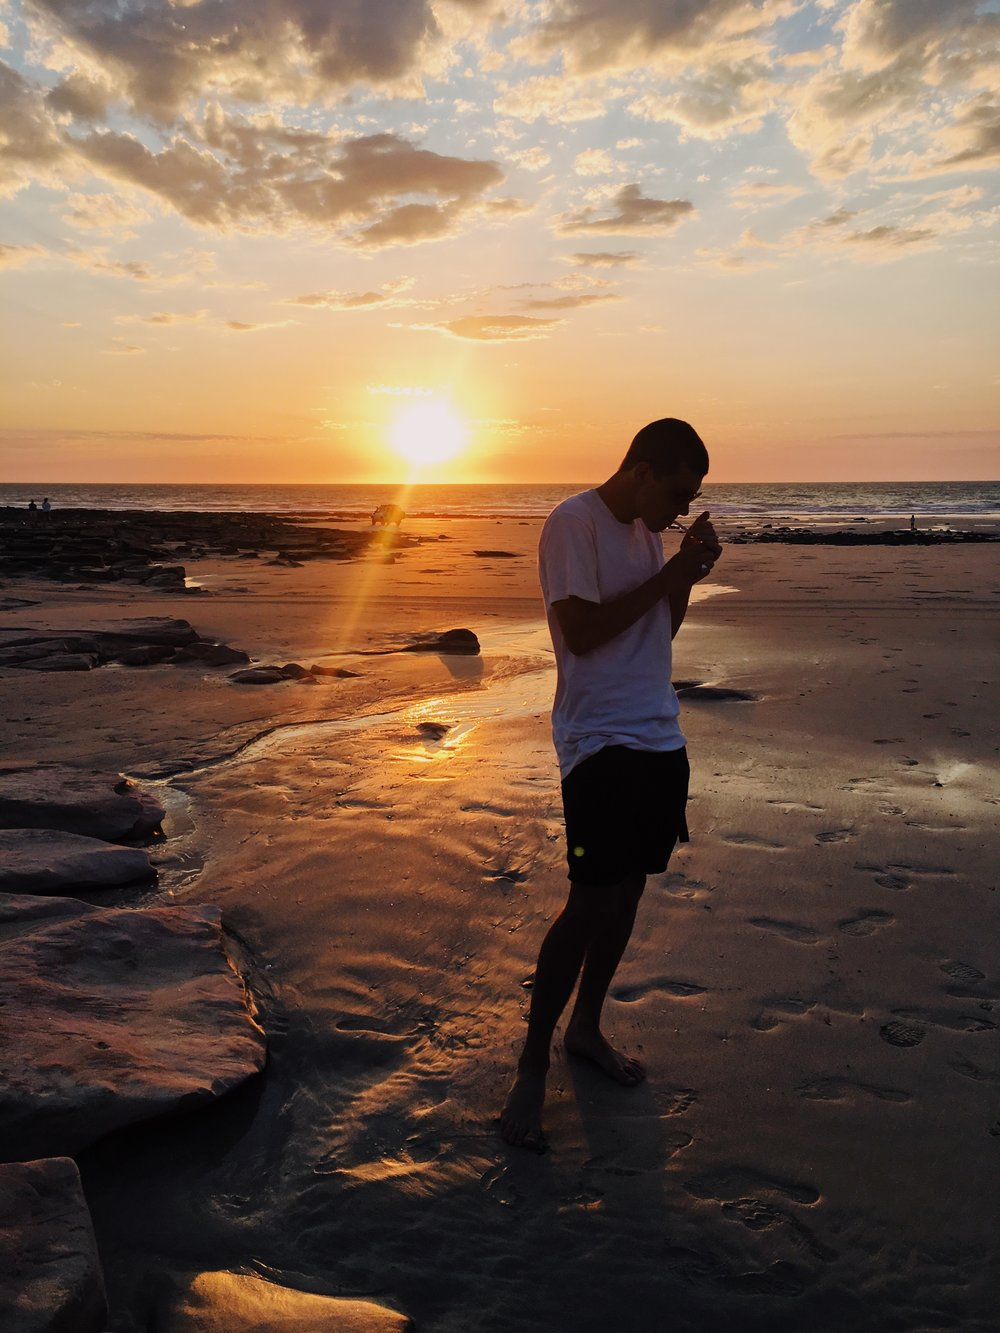 Mark in Broome